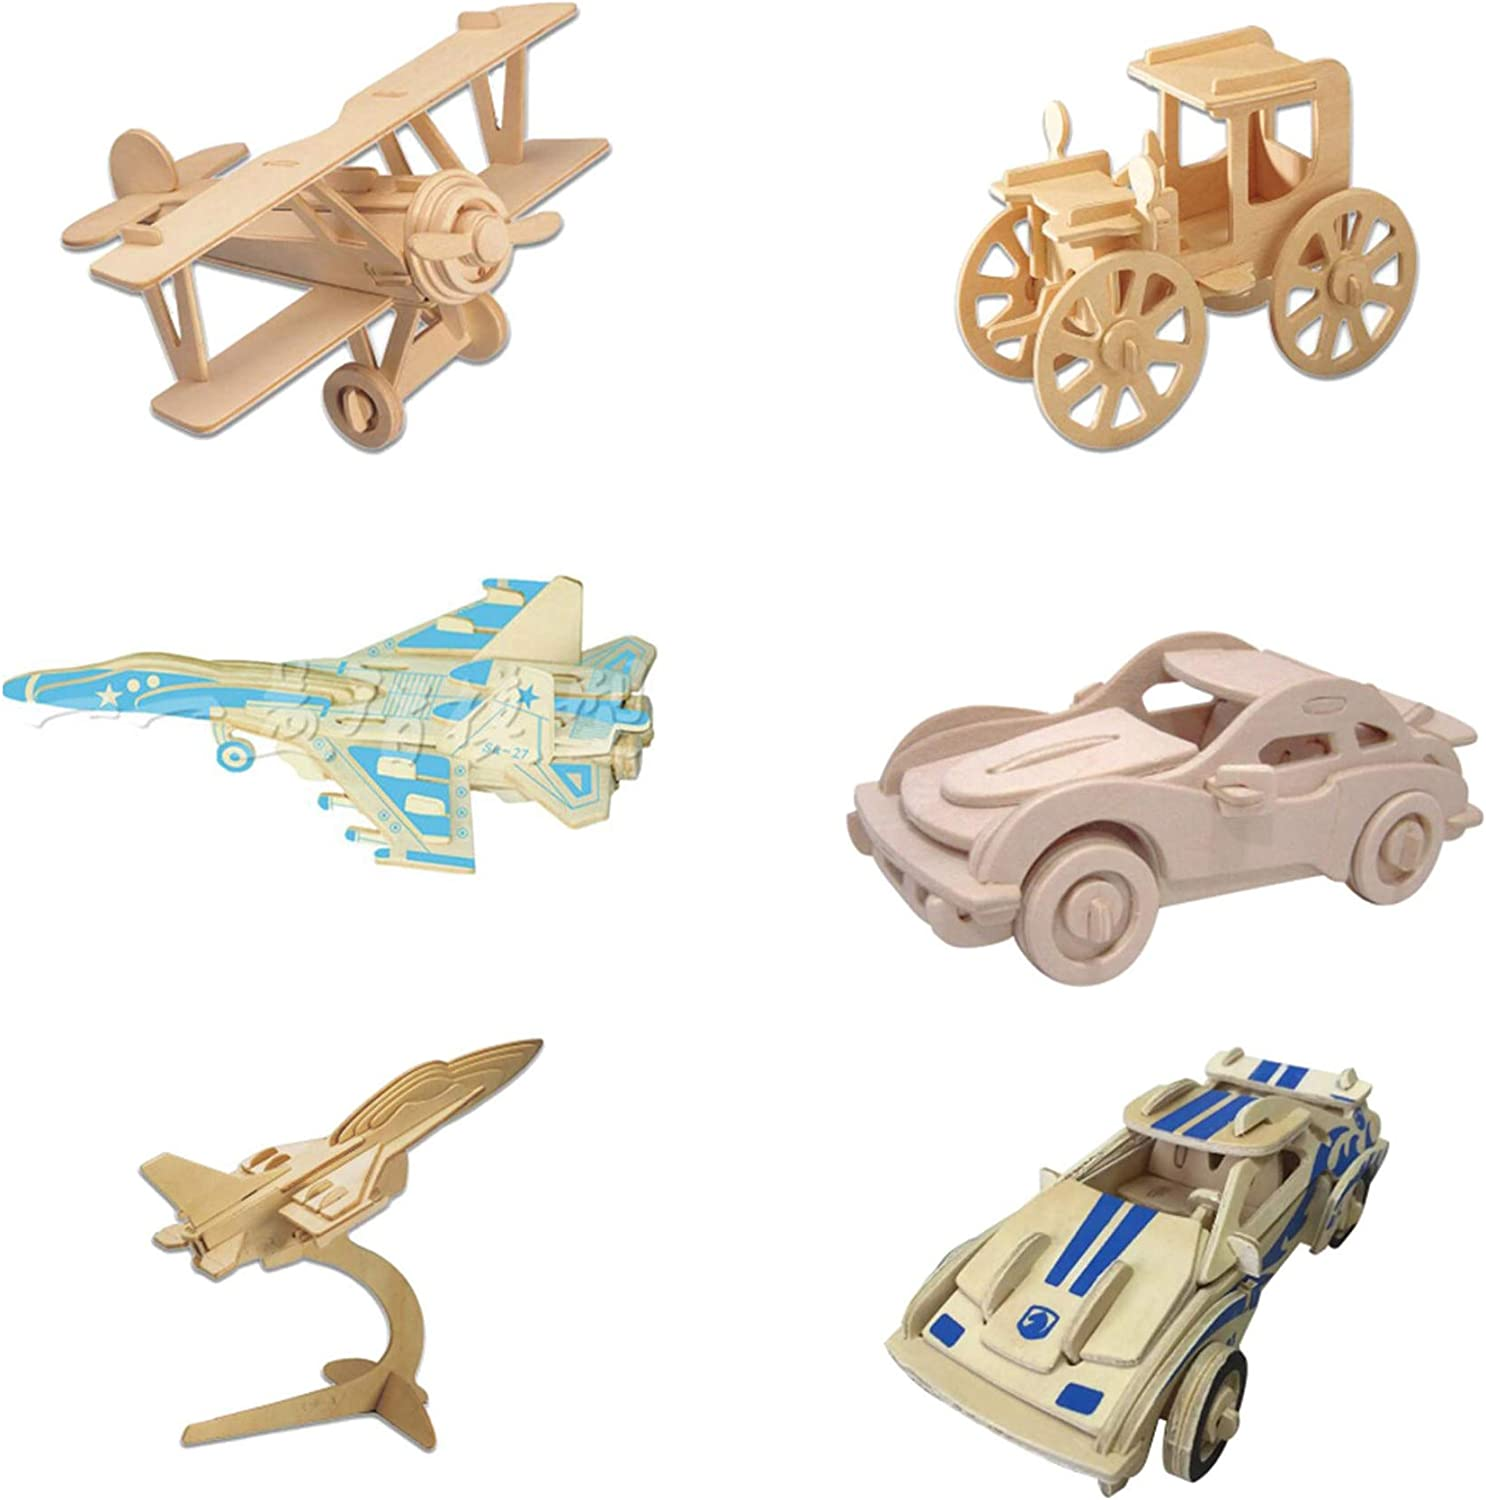 LUVenus 3D Wooden Puzzle Car and Aircraft 6 Packs Fighter Sports Car and Classic Car